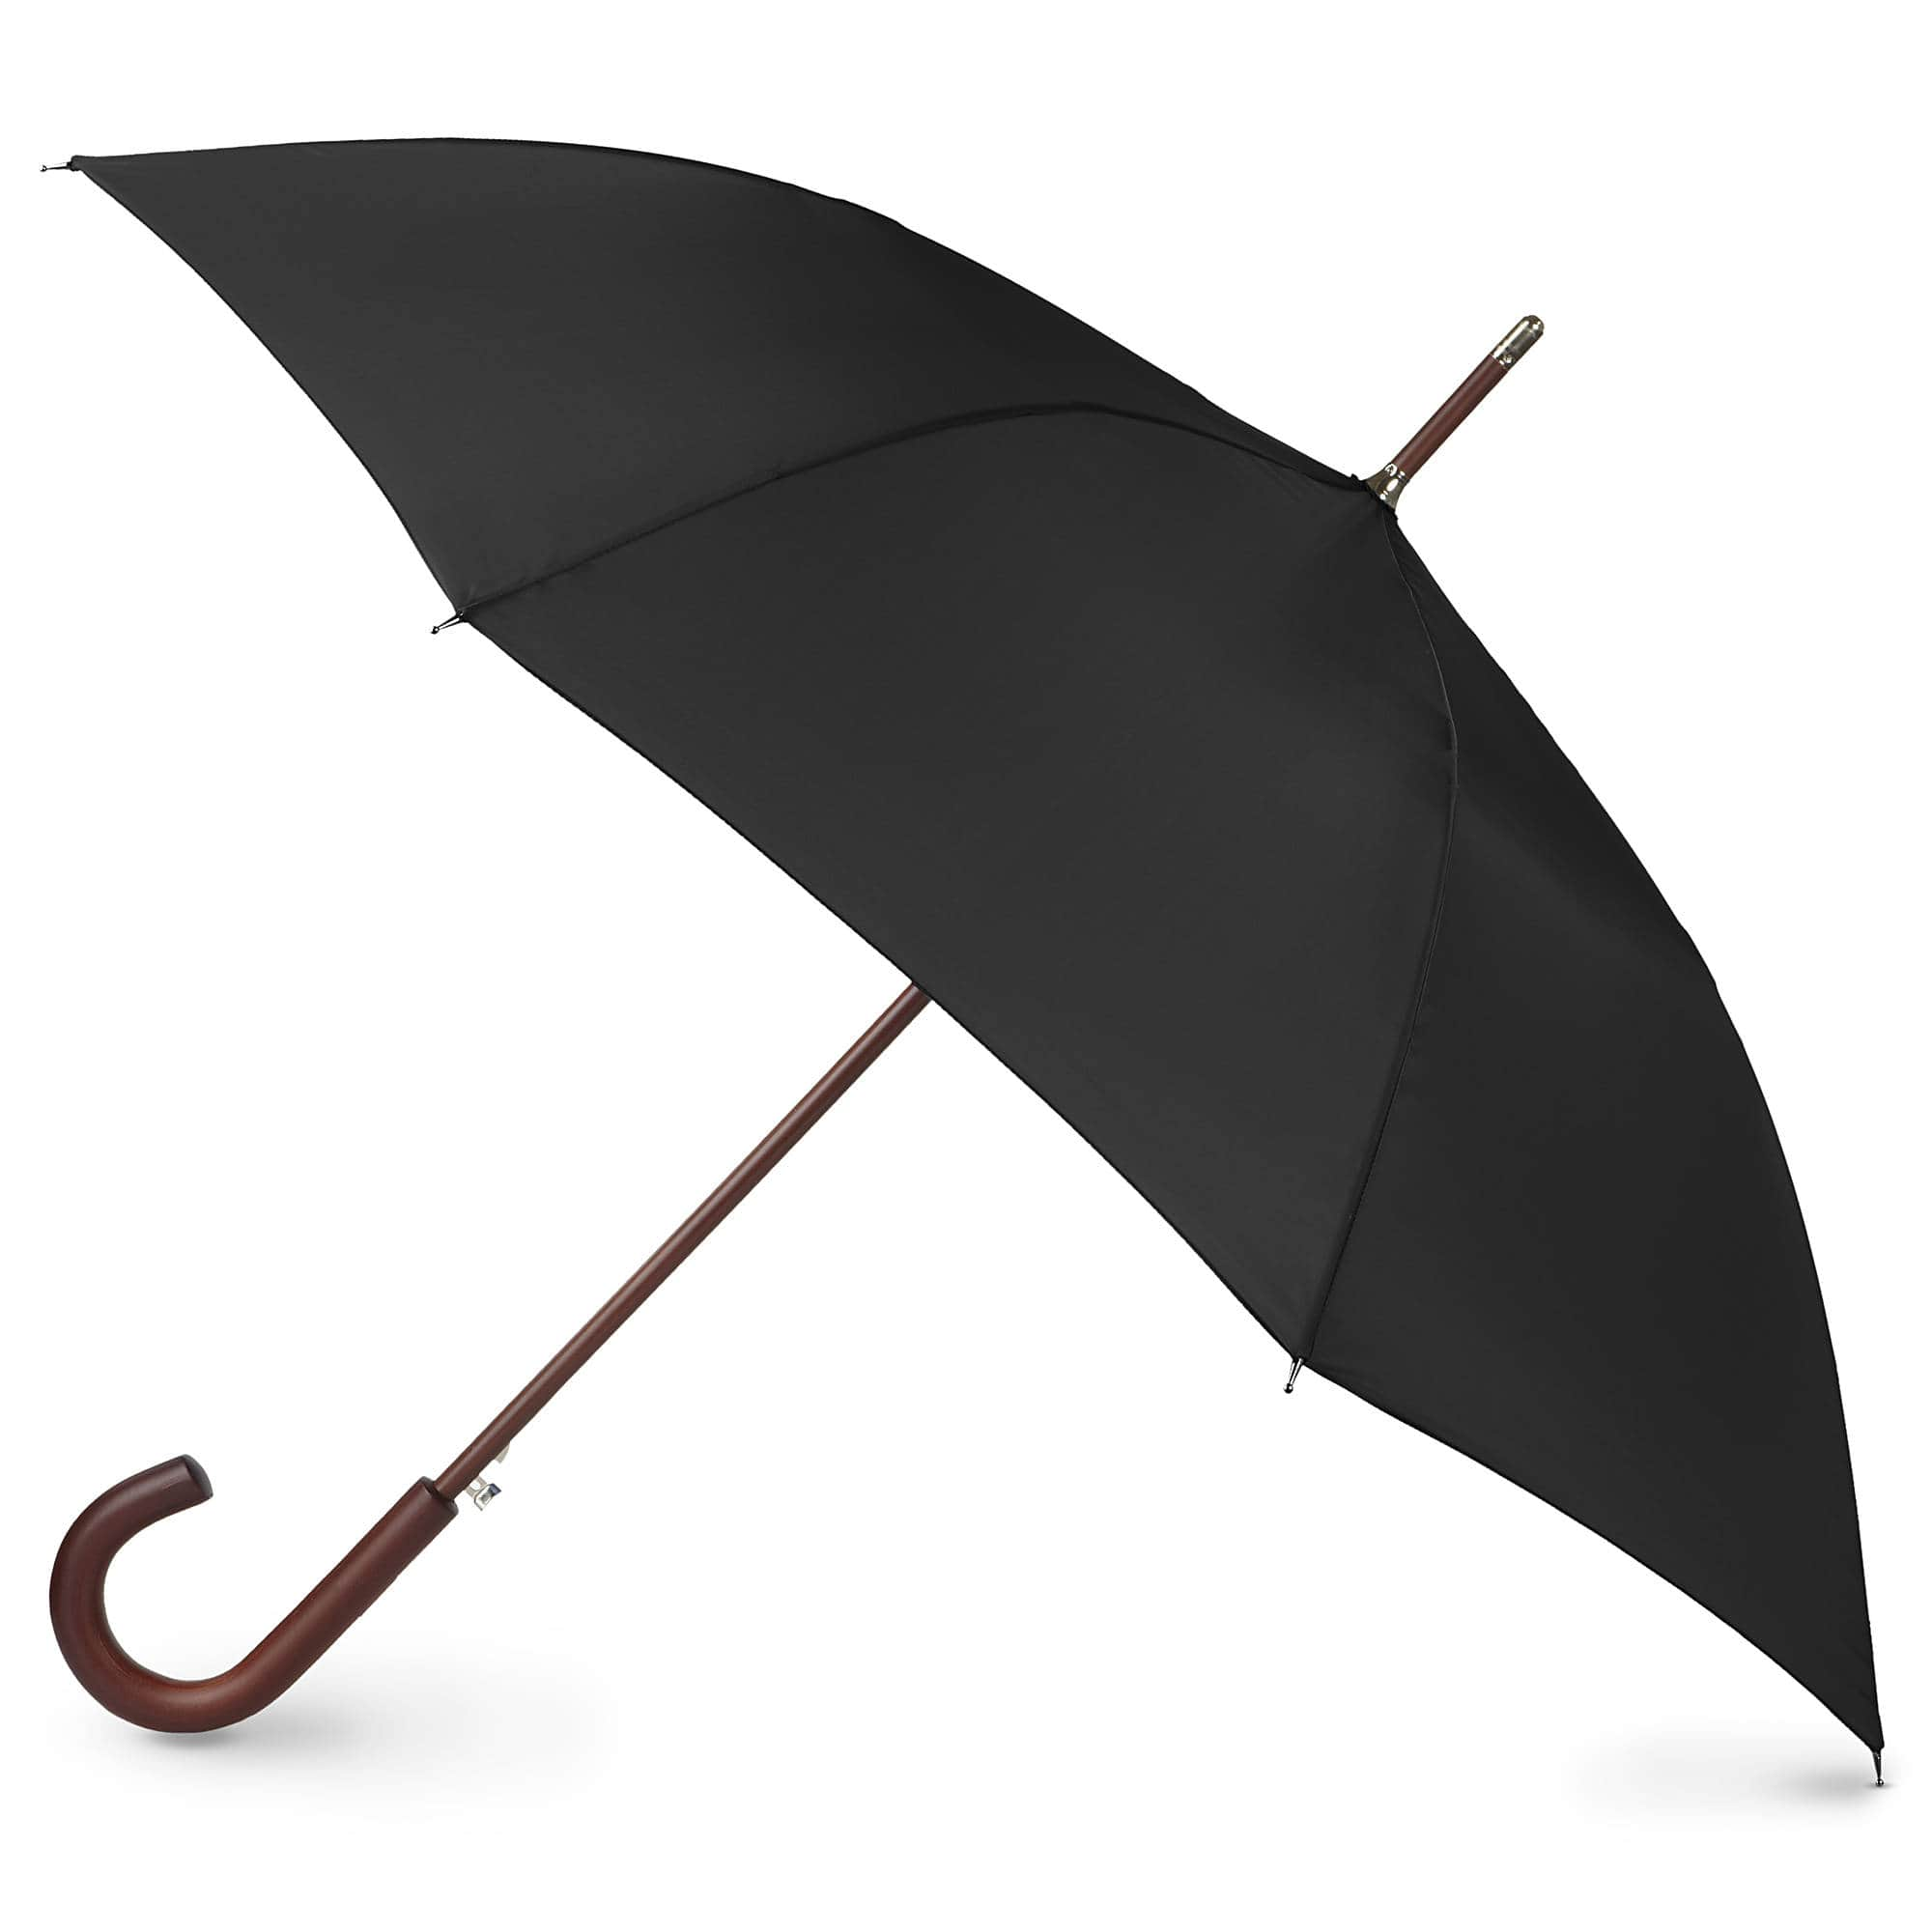 Totes Wooden Stick Umbrella $14 + Free Shipping